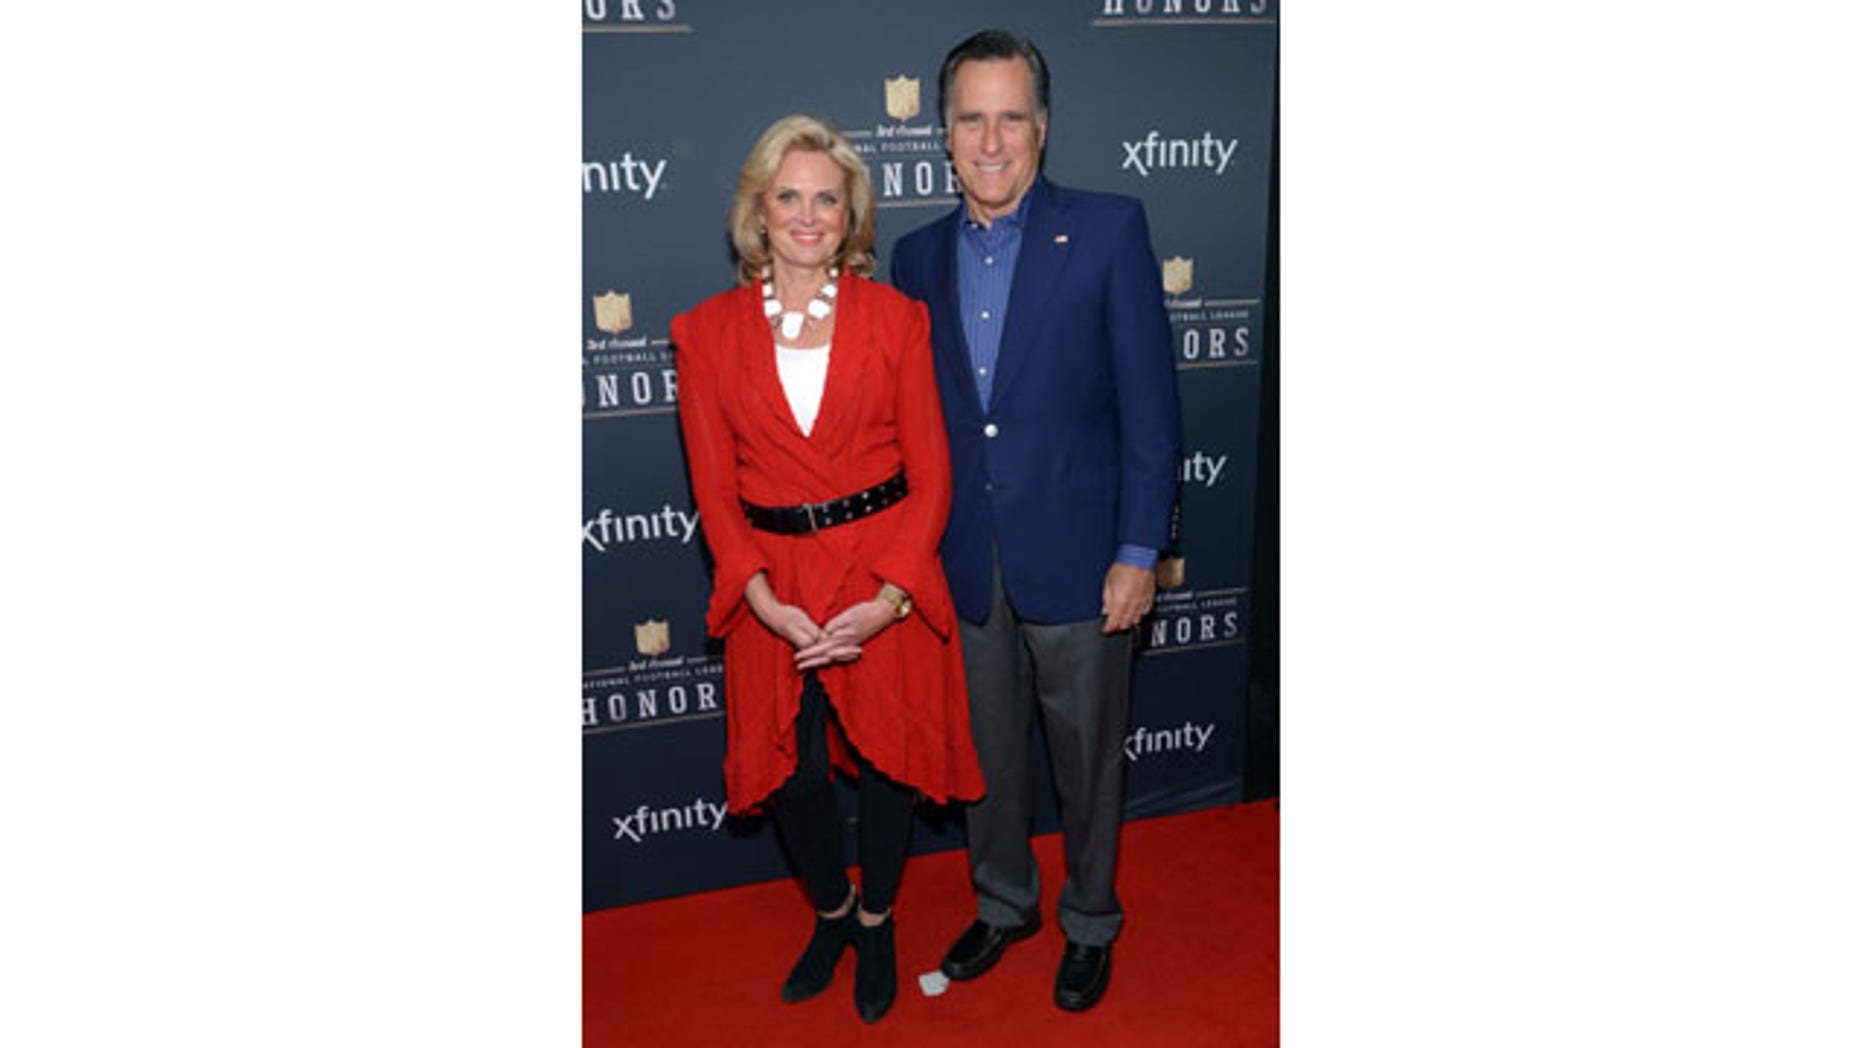 February 1, 2014: Ann and Mitt Romney arrive at the third annual NFL Honors at Radio City Music Hall in New York. (Photo by Evan Agostini/Invision for NFL/AP Images)